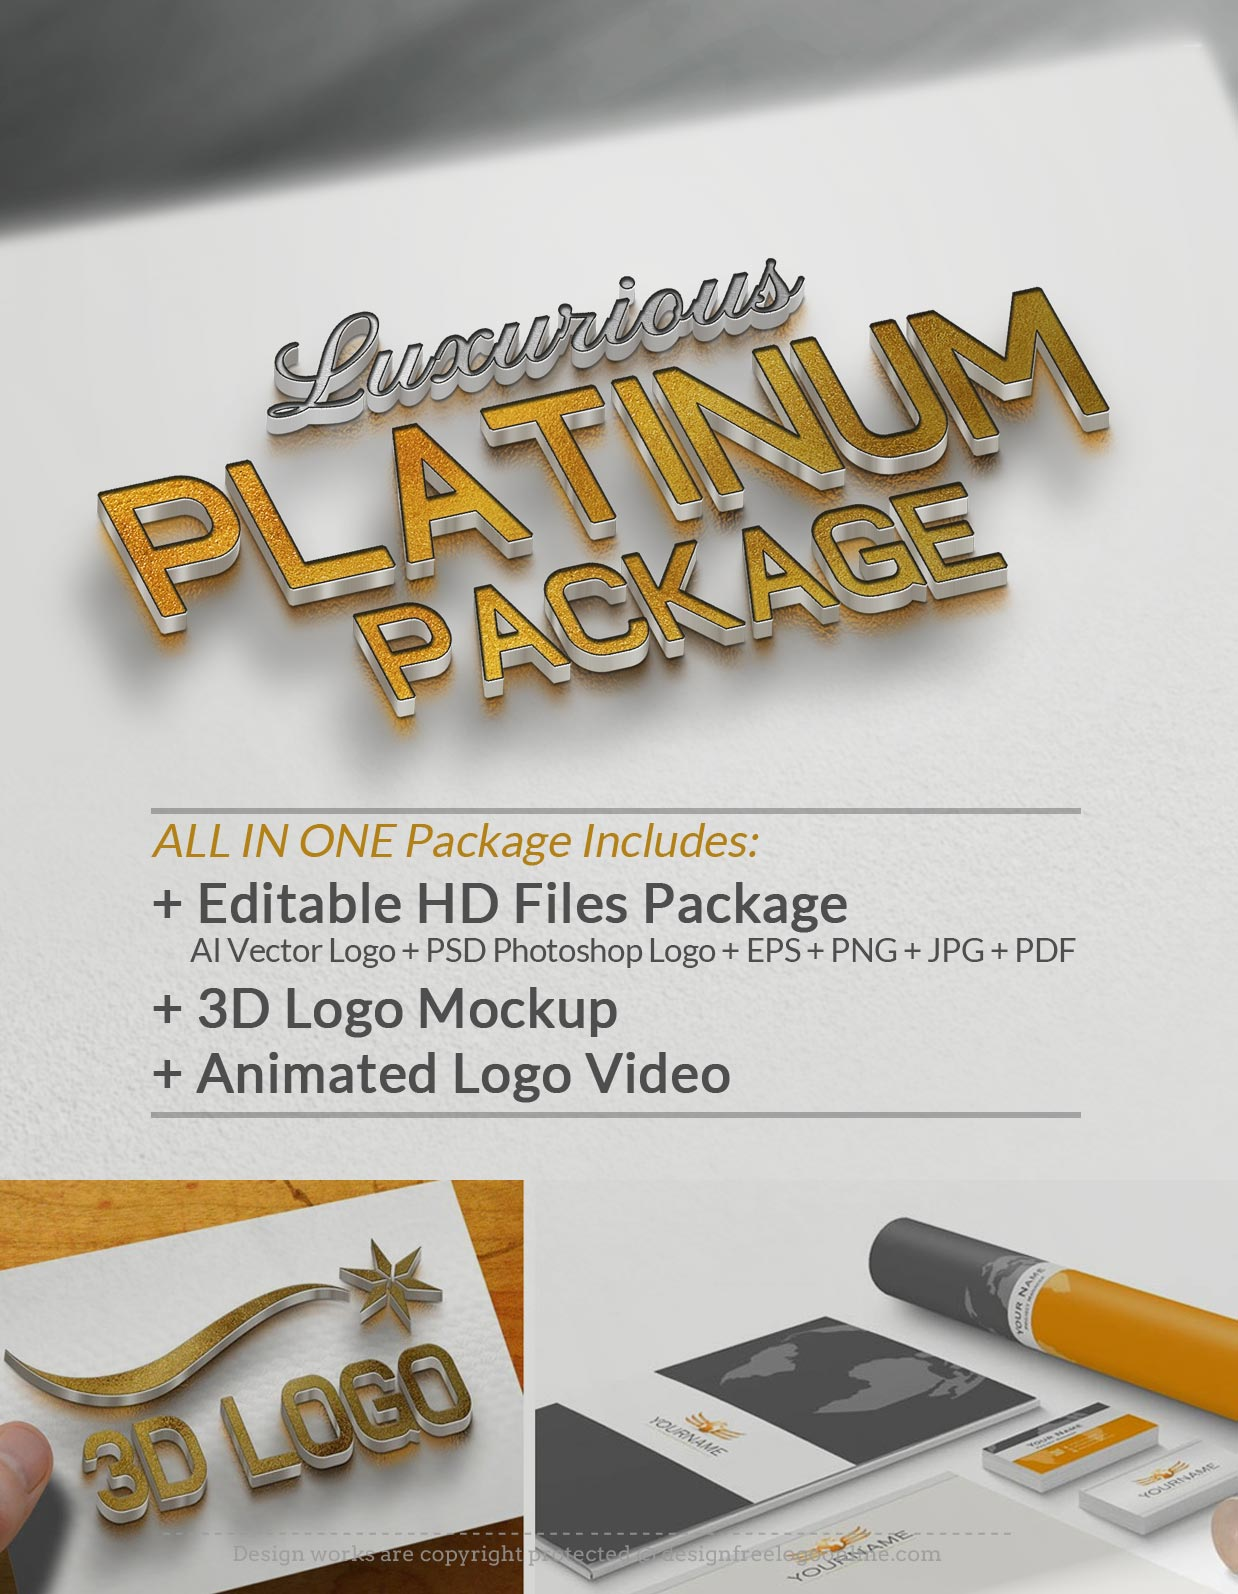 Upgrade Your Logo ALL-IN-ONE Luxurious Platinum Package